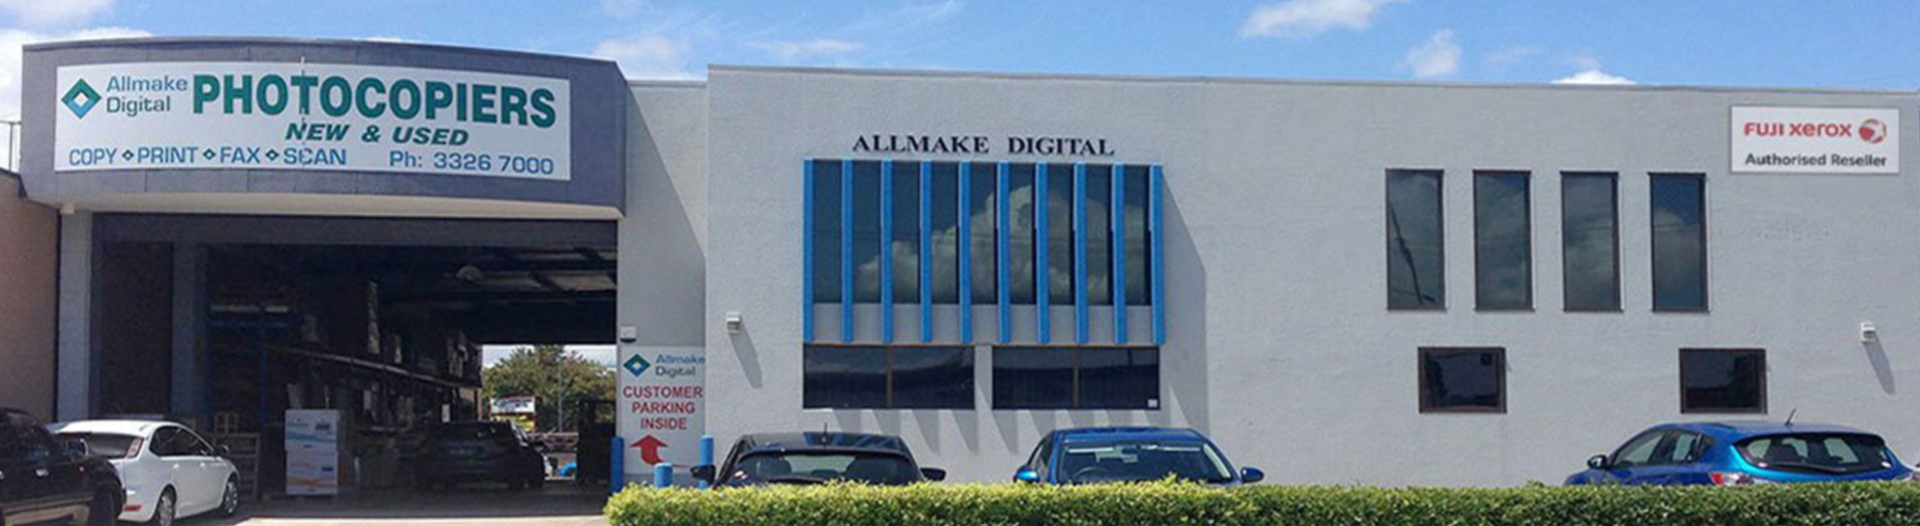 Welcome to Allmake Digital